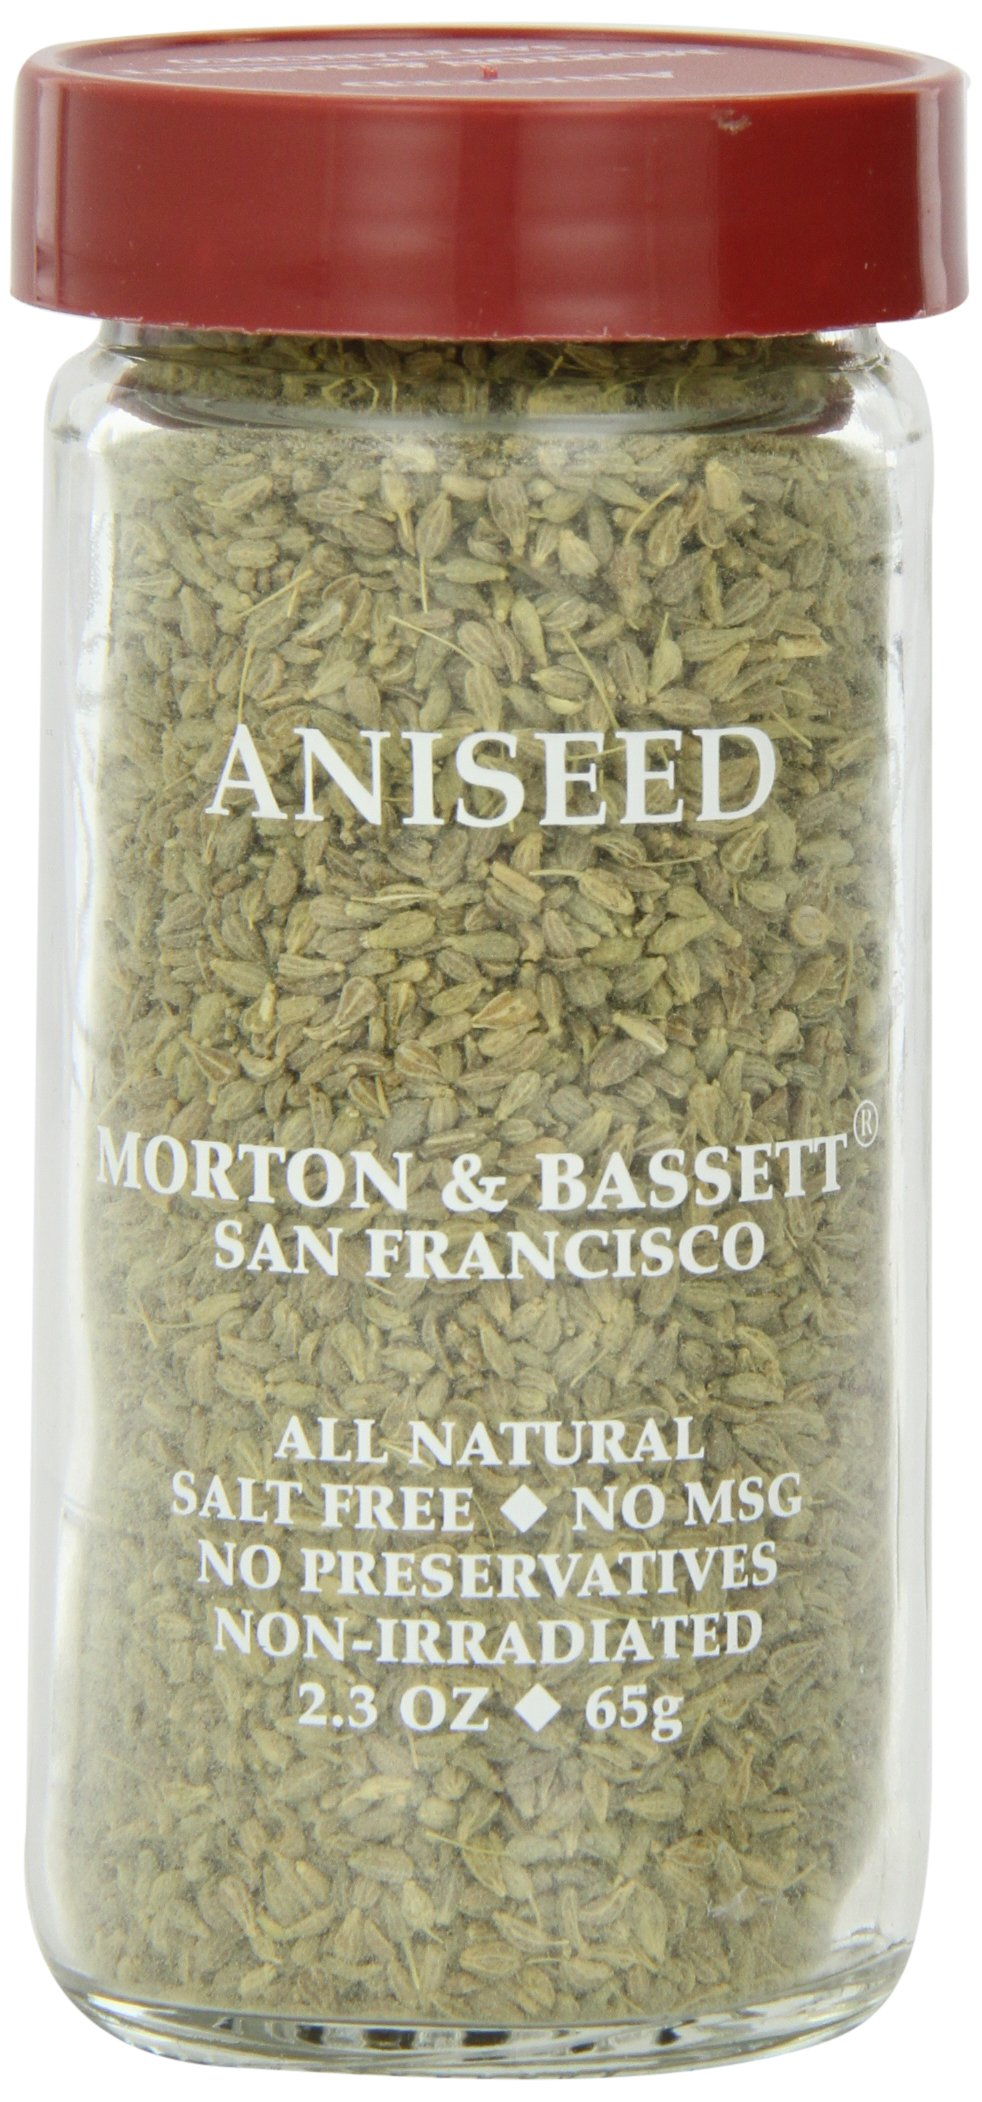 Morton & Basset Spices, Aniseed, 2.3 Ounce (Pack of 3) by Morton & Bassett (Image #1)